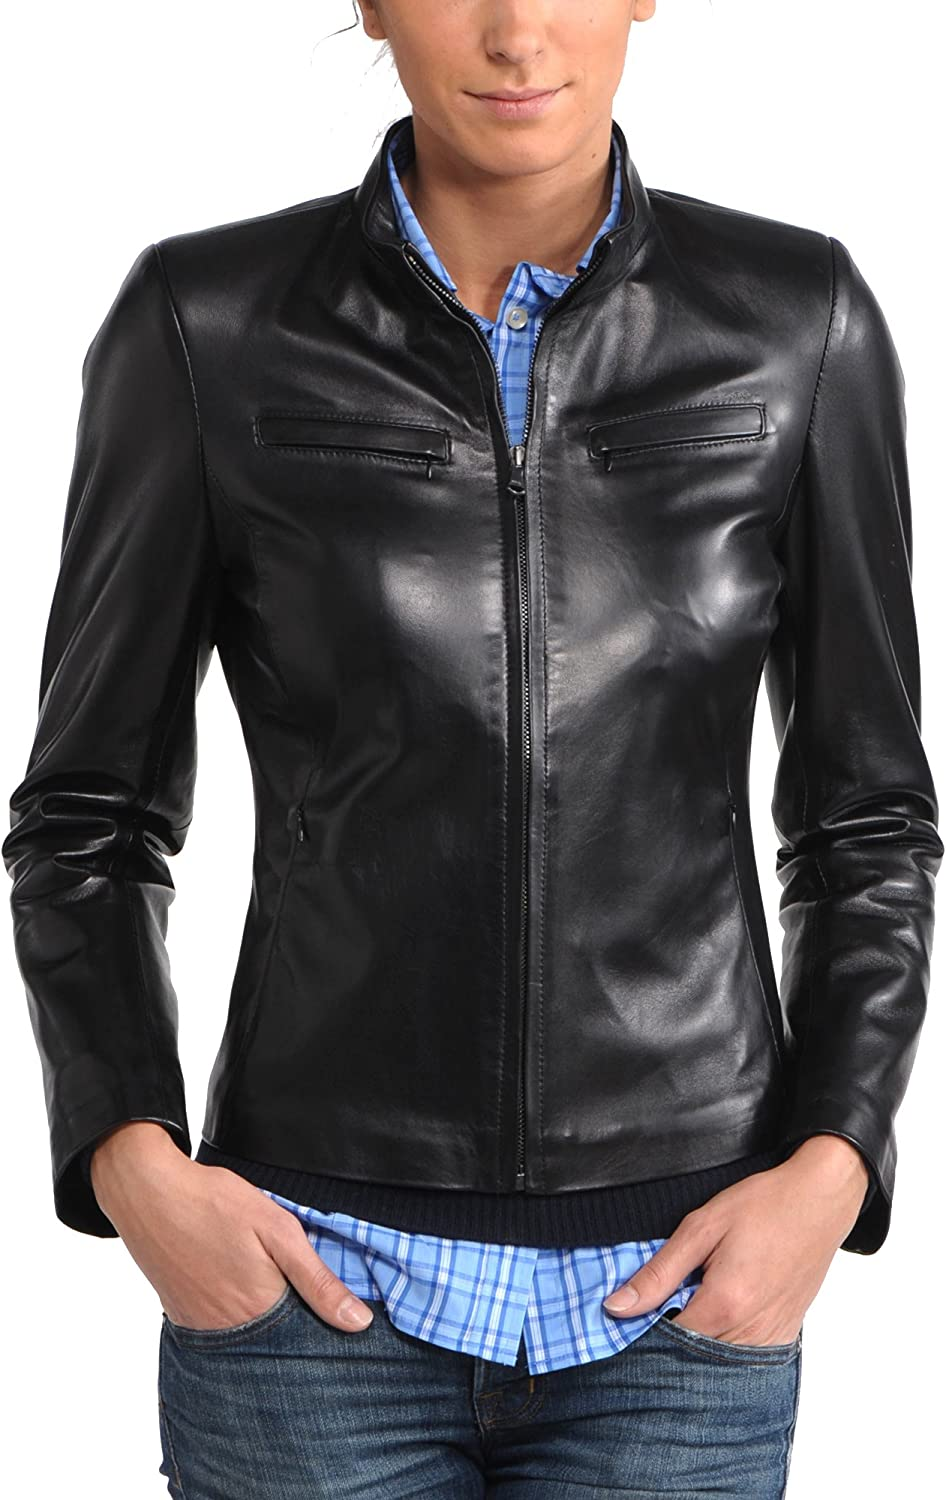 100% New Genuine Leather Lambskin Women Biker Motorcycle Jacket Ladies LTN233